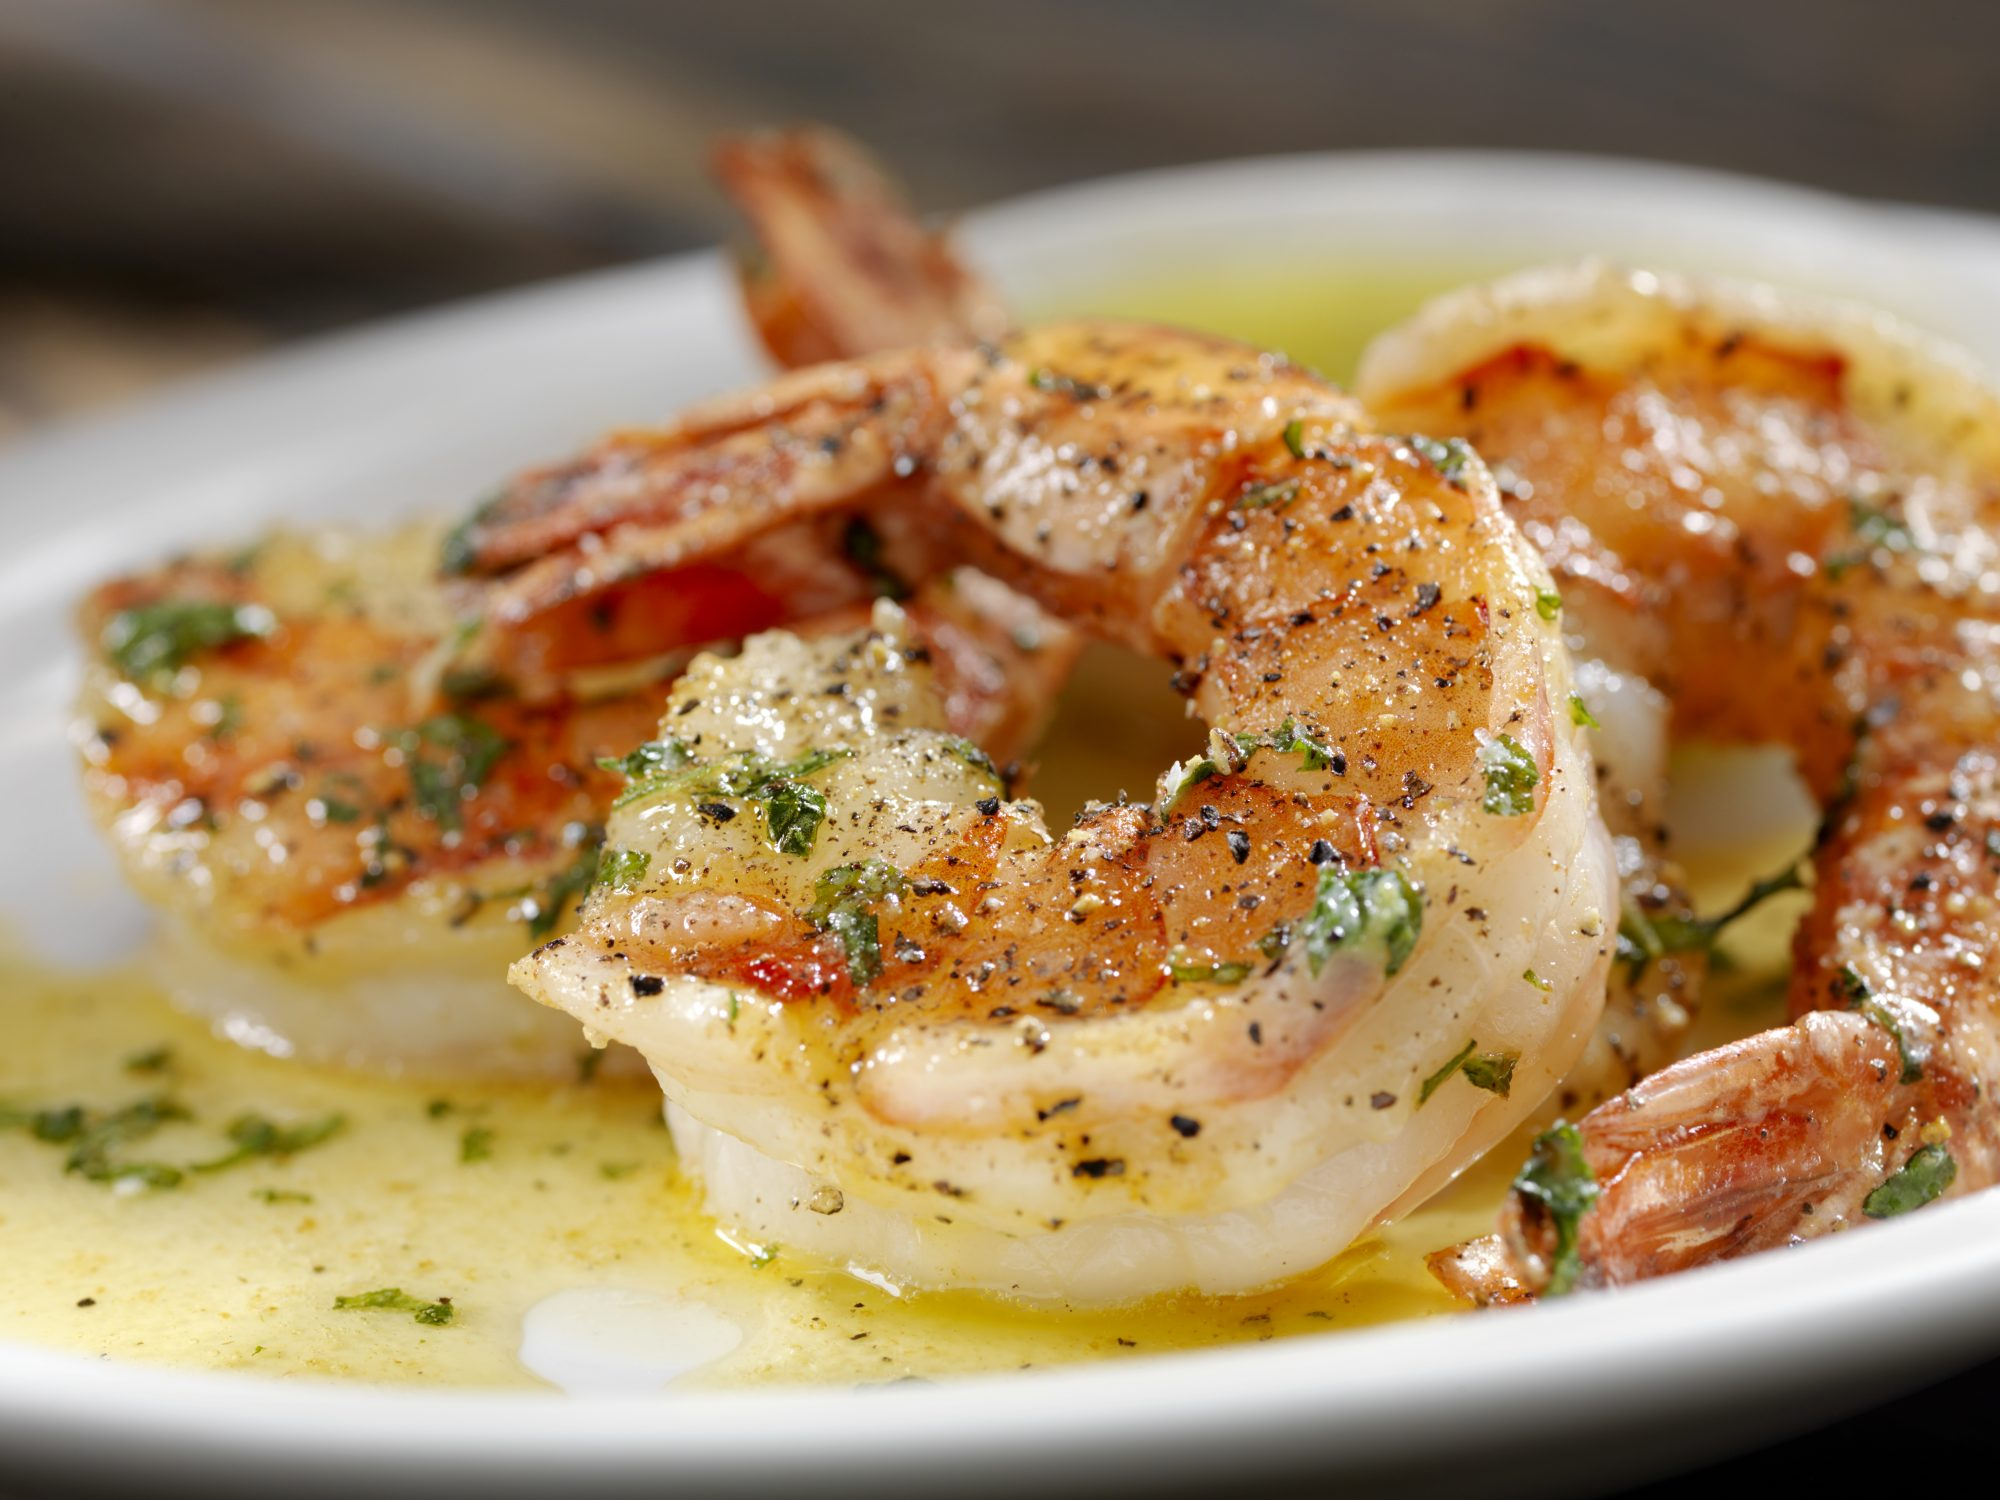 Shrimp in Butter on Plate